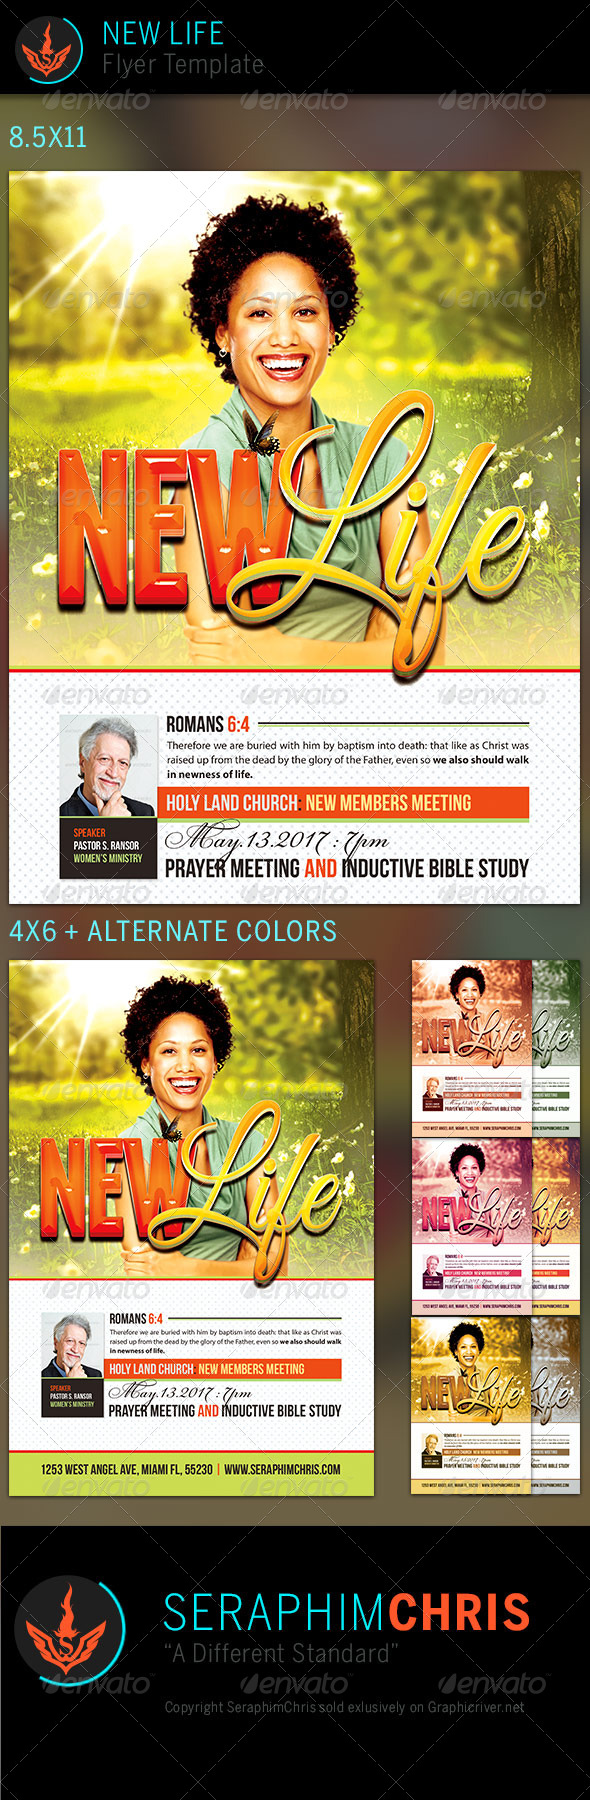 New Life: Church Flyer Template - Church Flyers